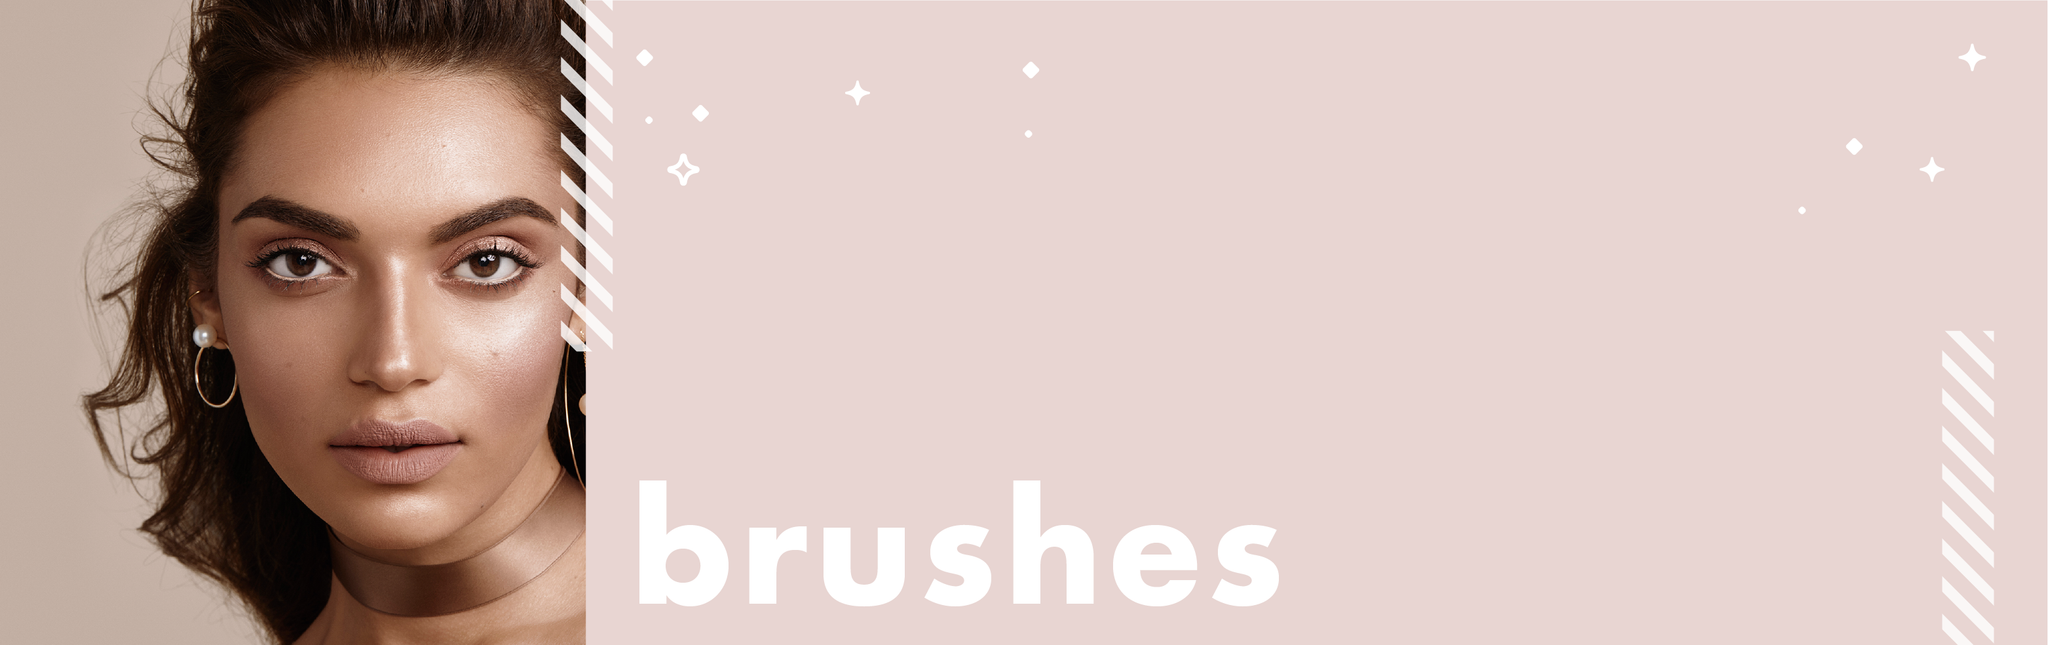 Brushes page banner